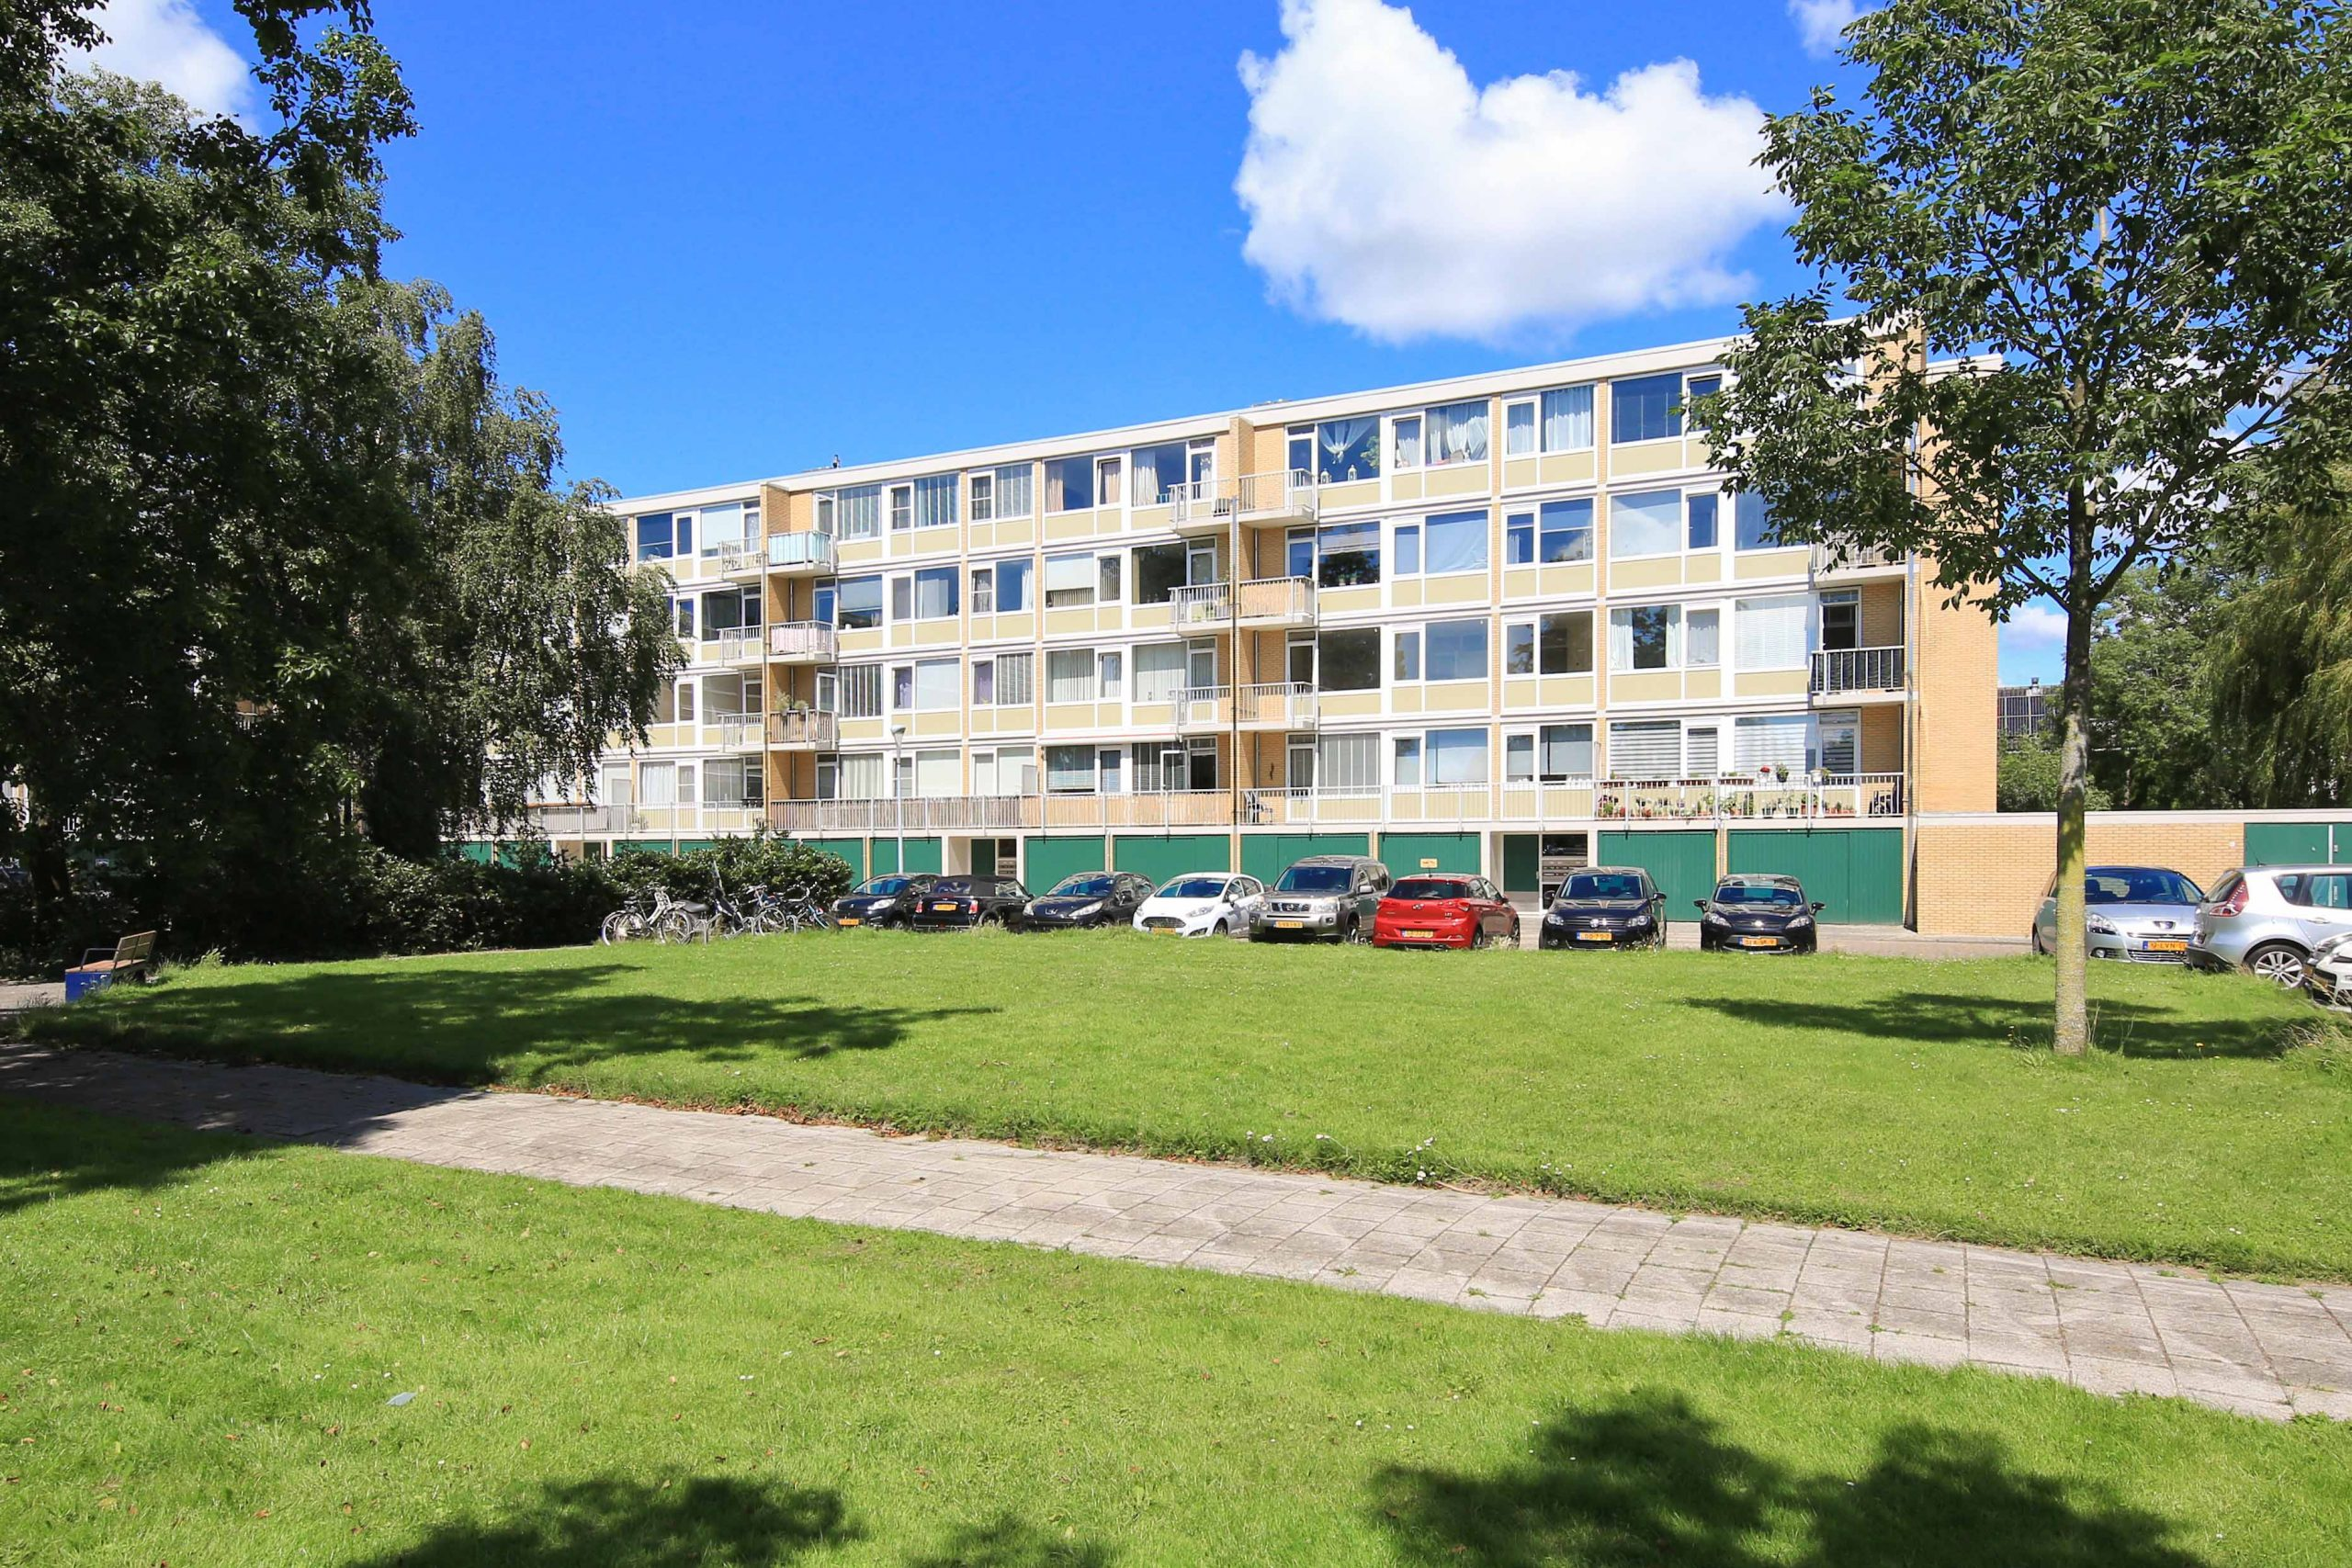 Partly furnished three-room apartment on the second floor with double balcony and unobstructed view @Badhoevedorp Einsteinlaan 131 can be rented for two years